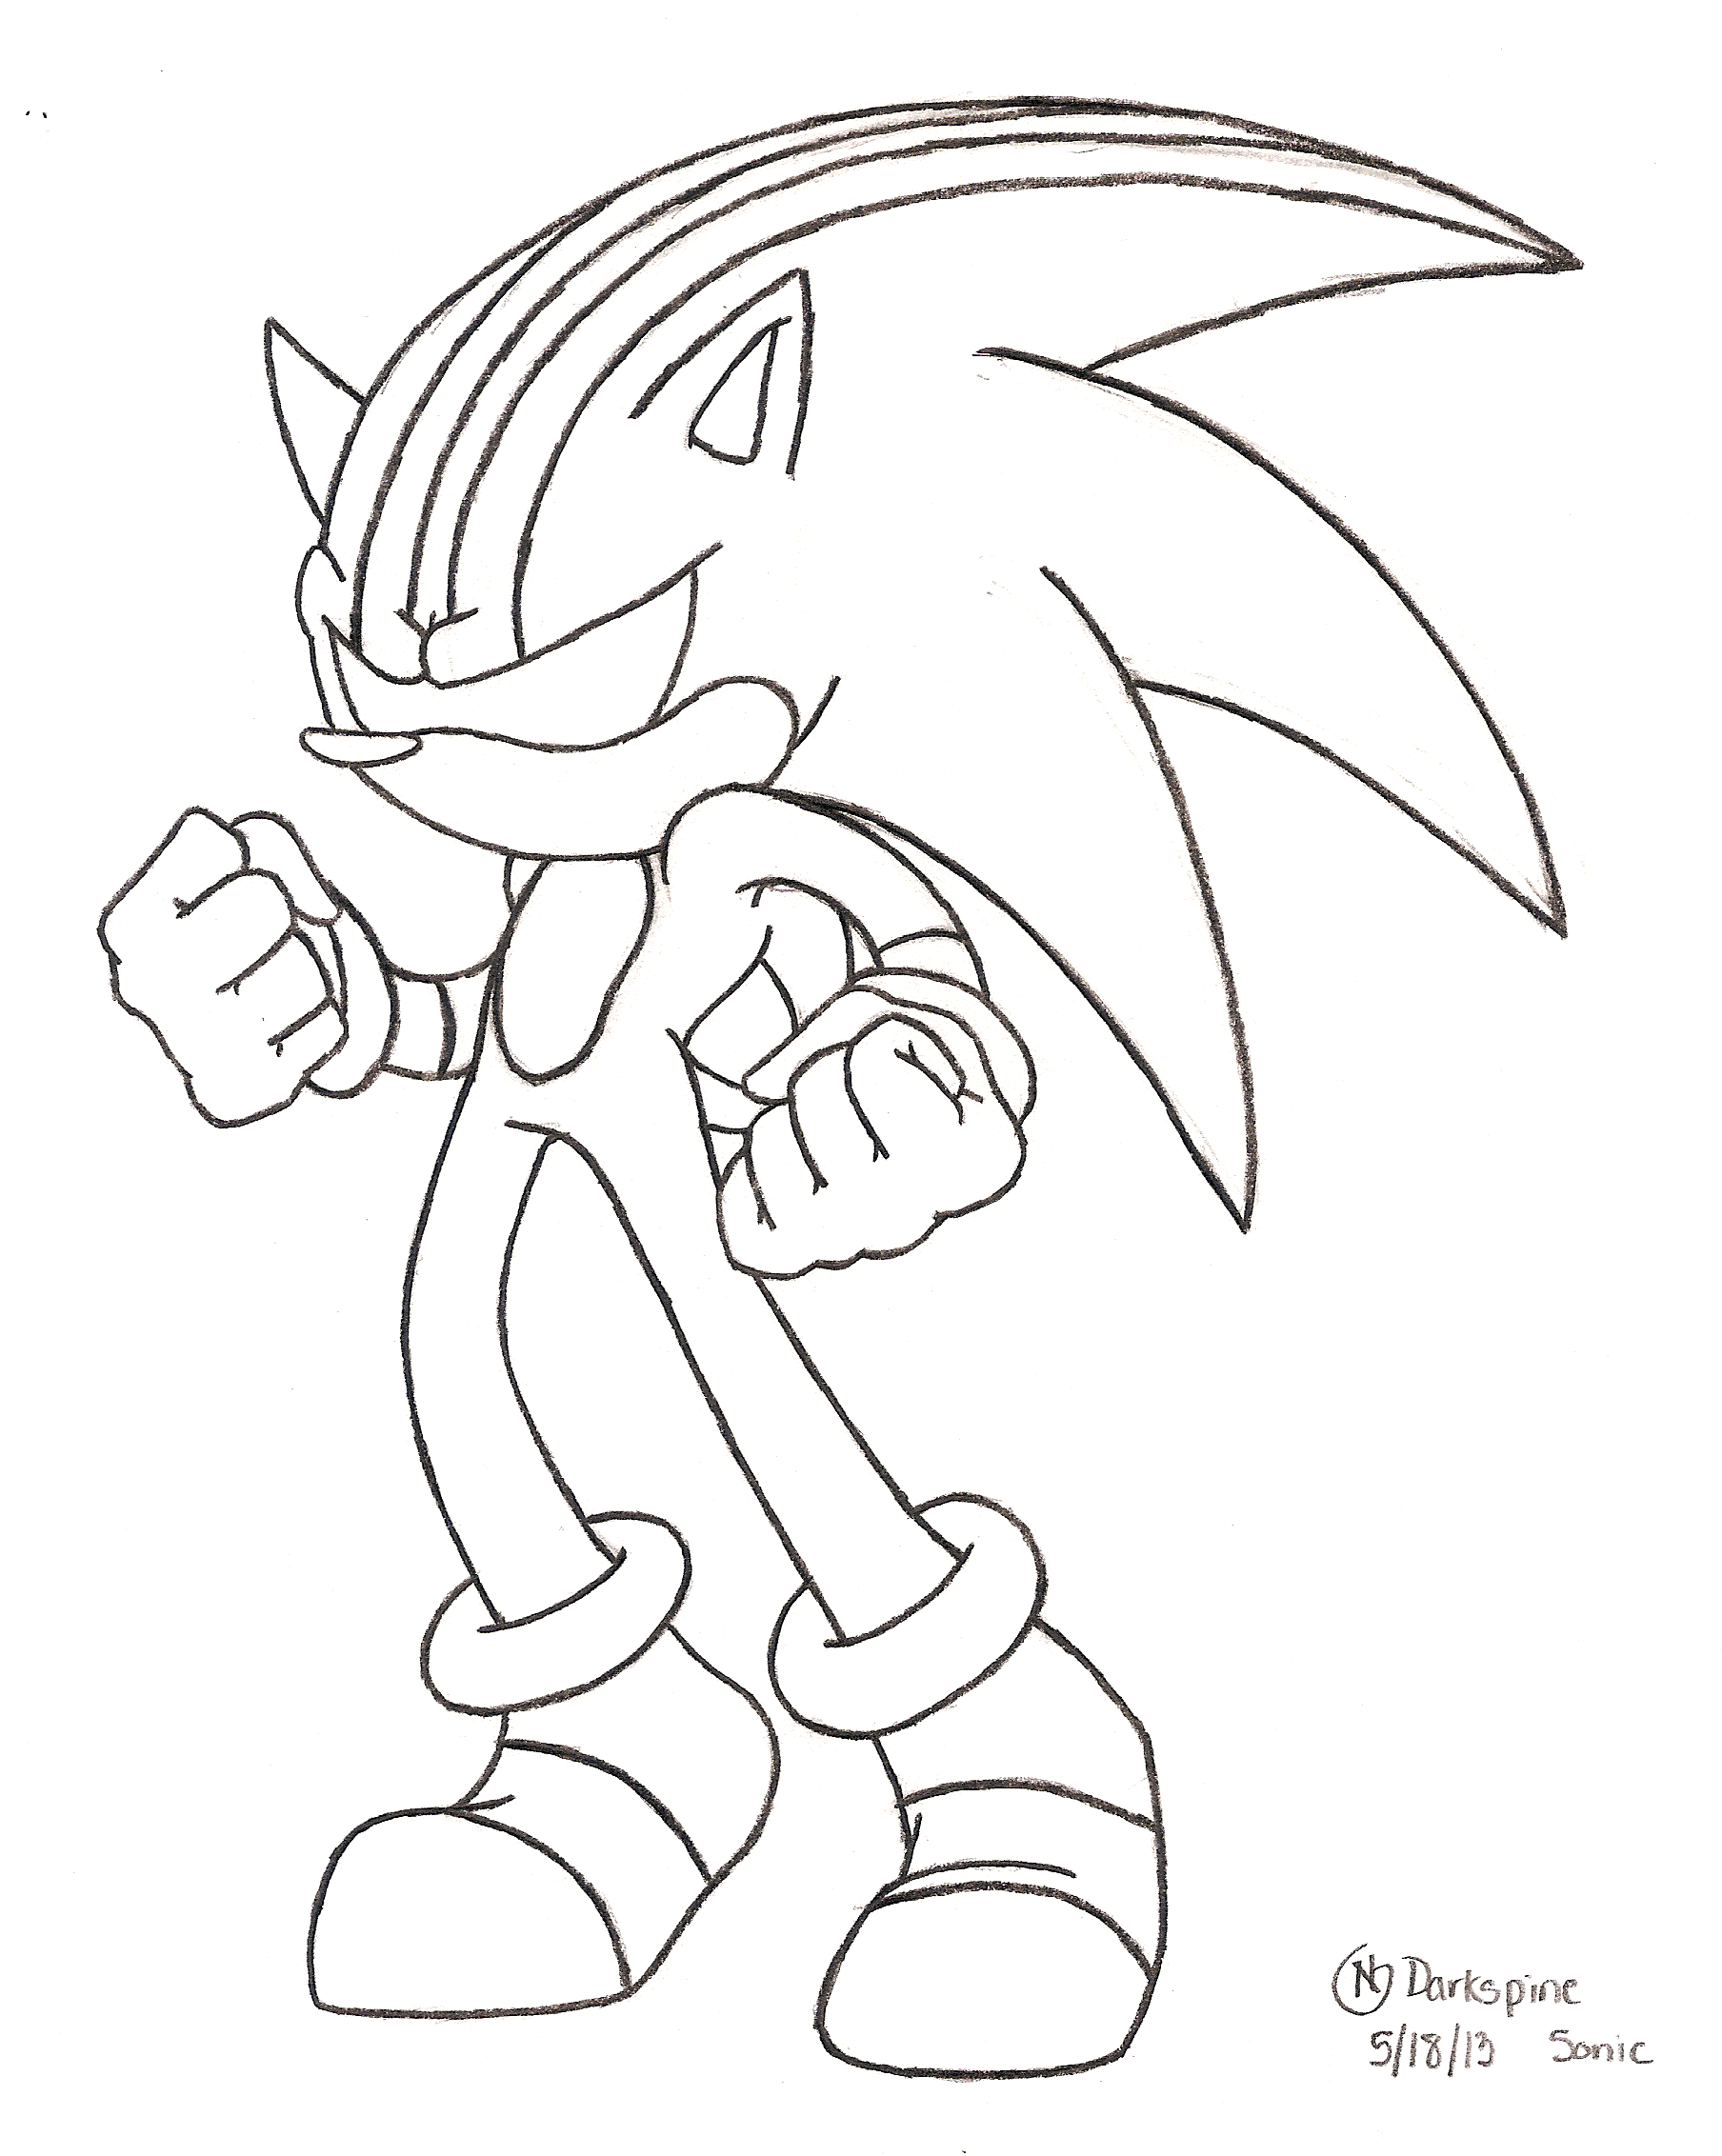 Darkspine sonic free colouring pages for Sonic color page